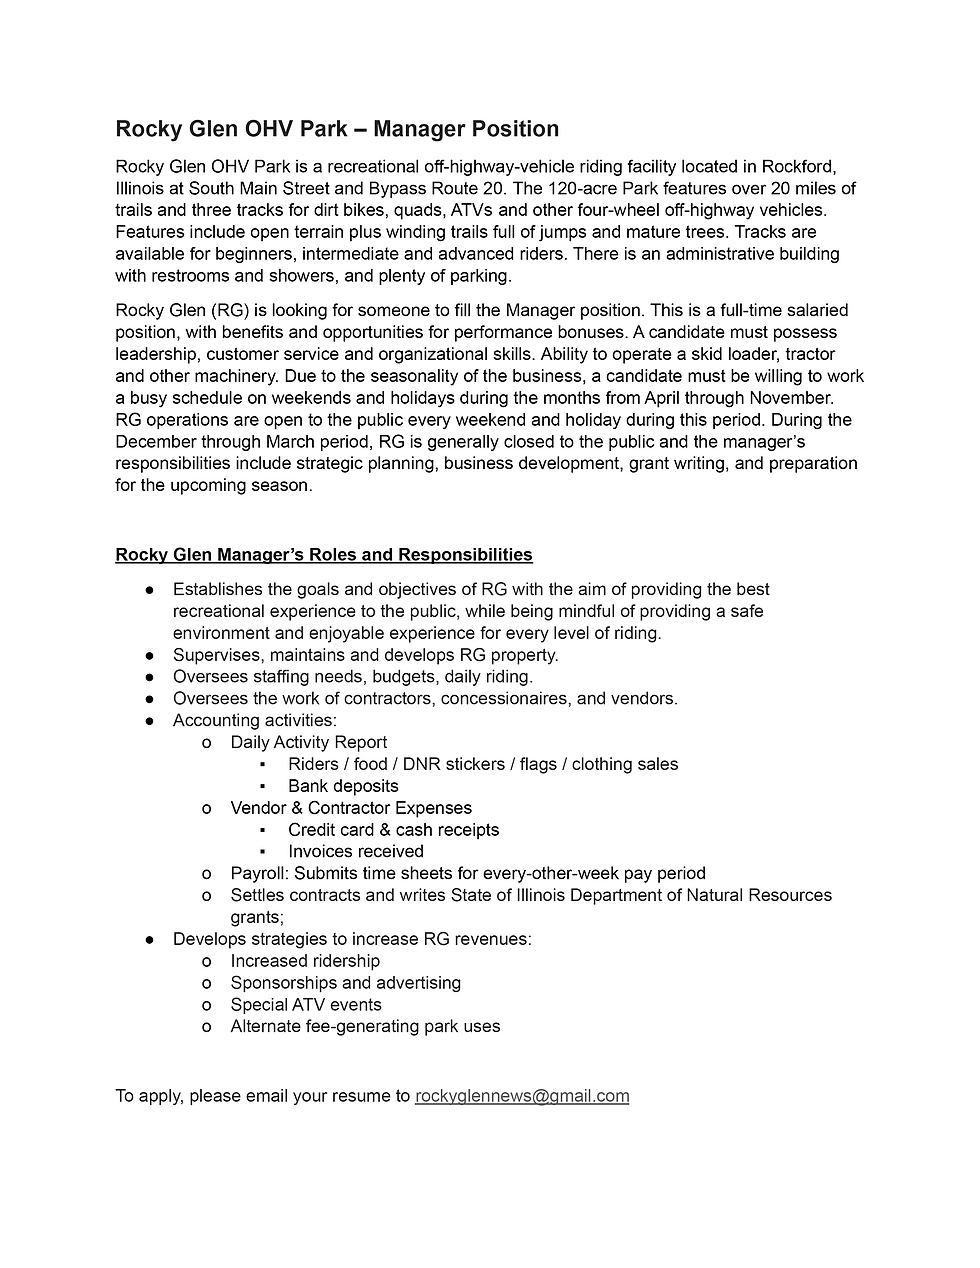 Rocky Glen OHV Park - Manager Position.d